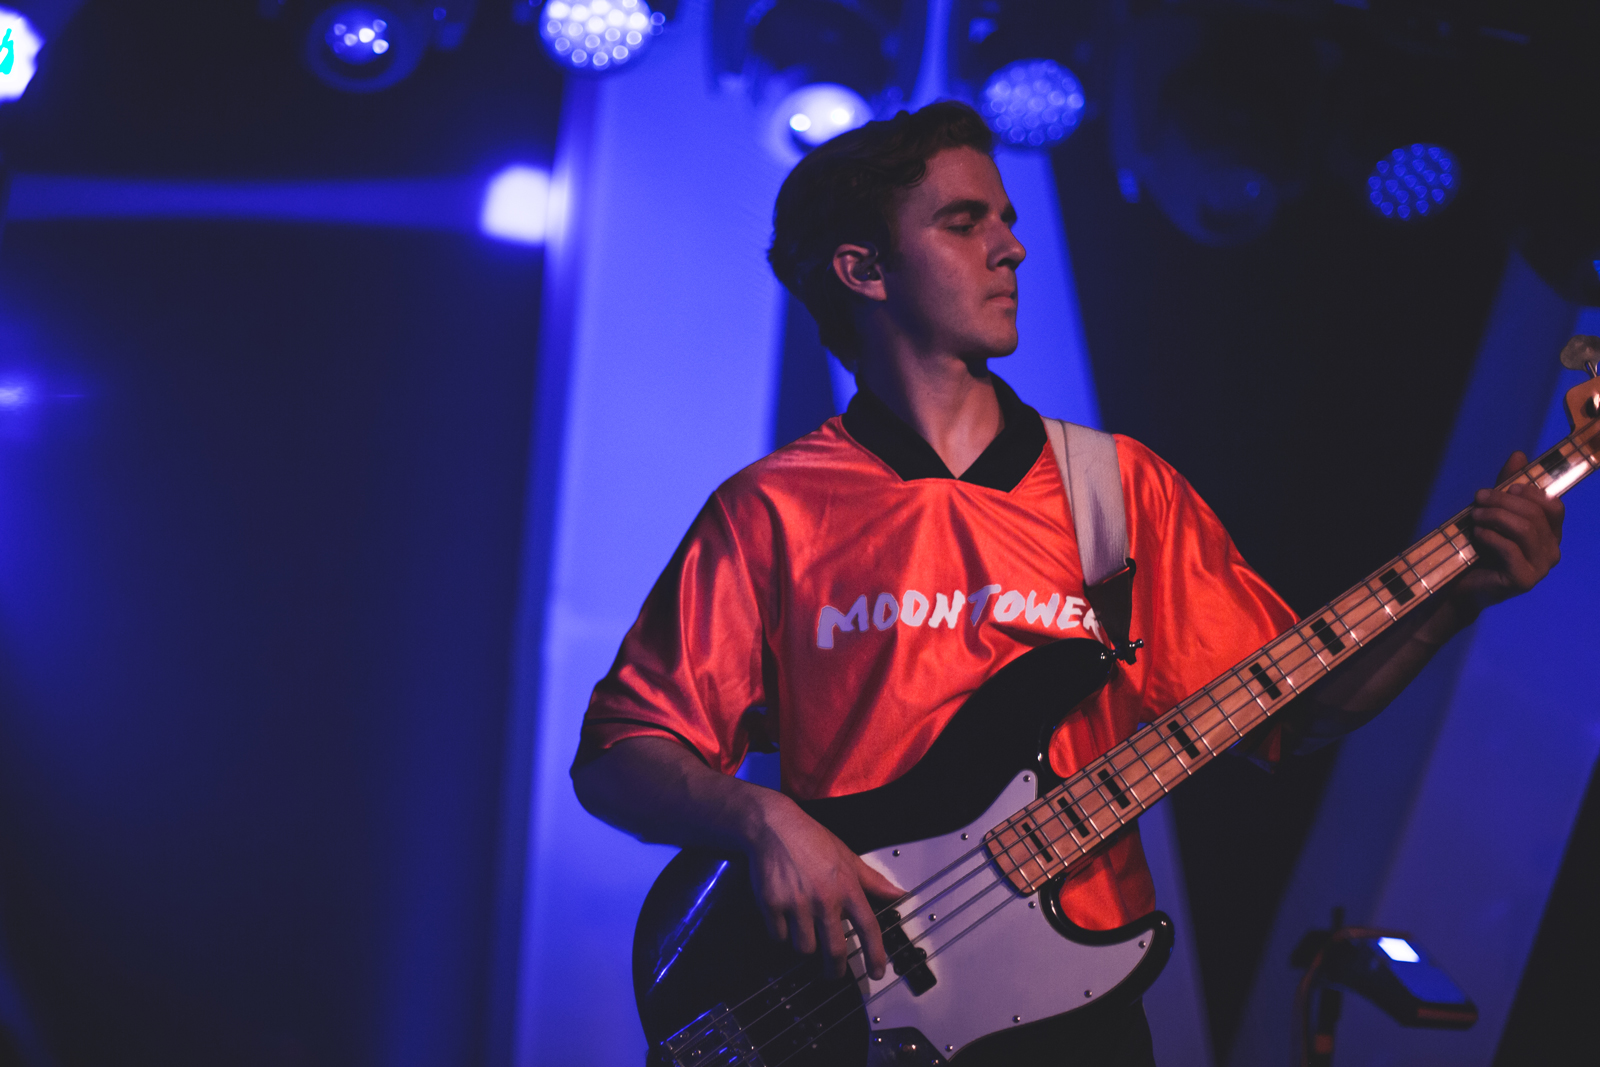 Tom at The Moroccan Lounge, September 26, 2018